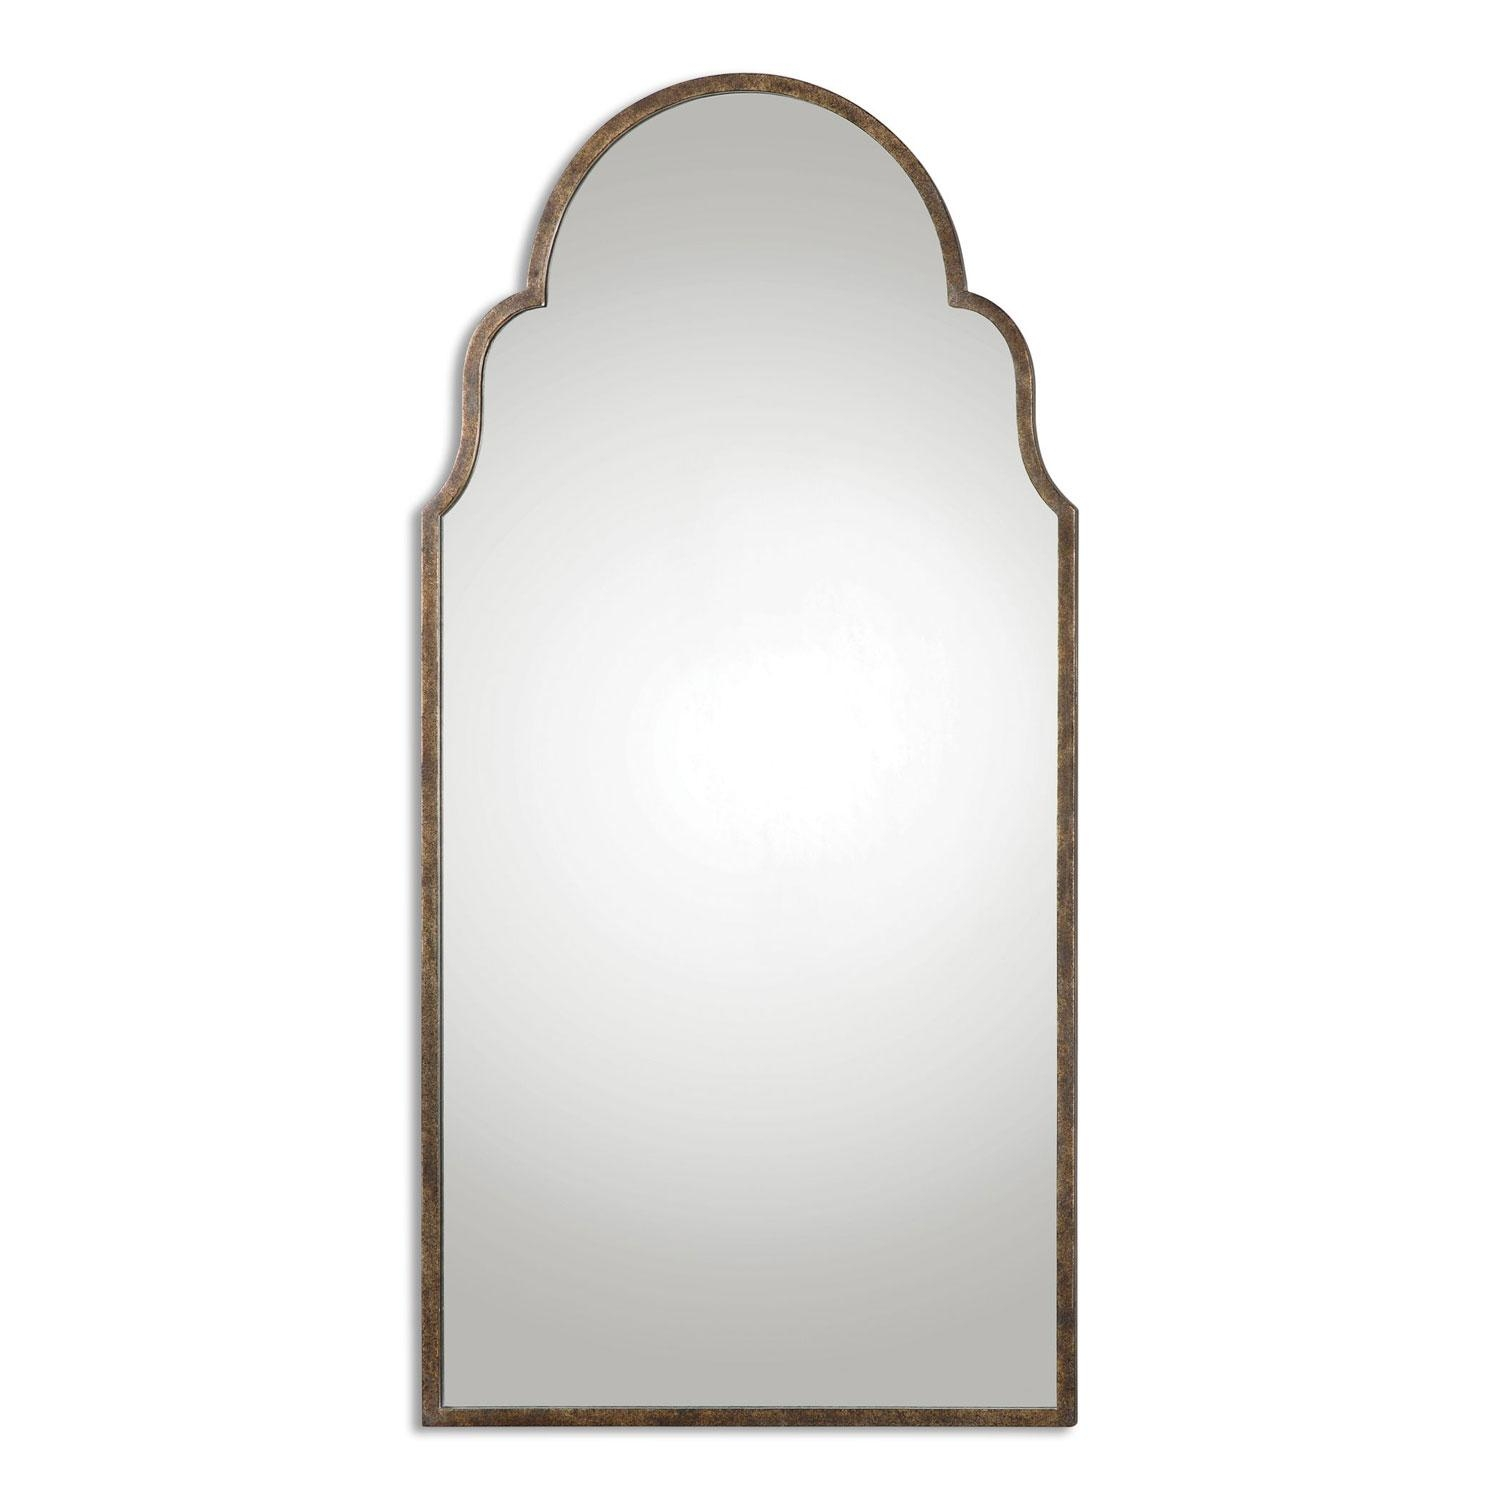 Arched Crowned Mirrors | Bellacor Within Curved Top Mirror (Image 8 of 20)